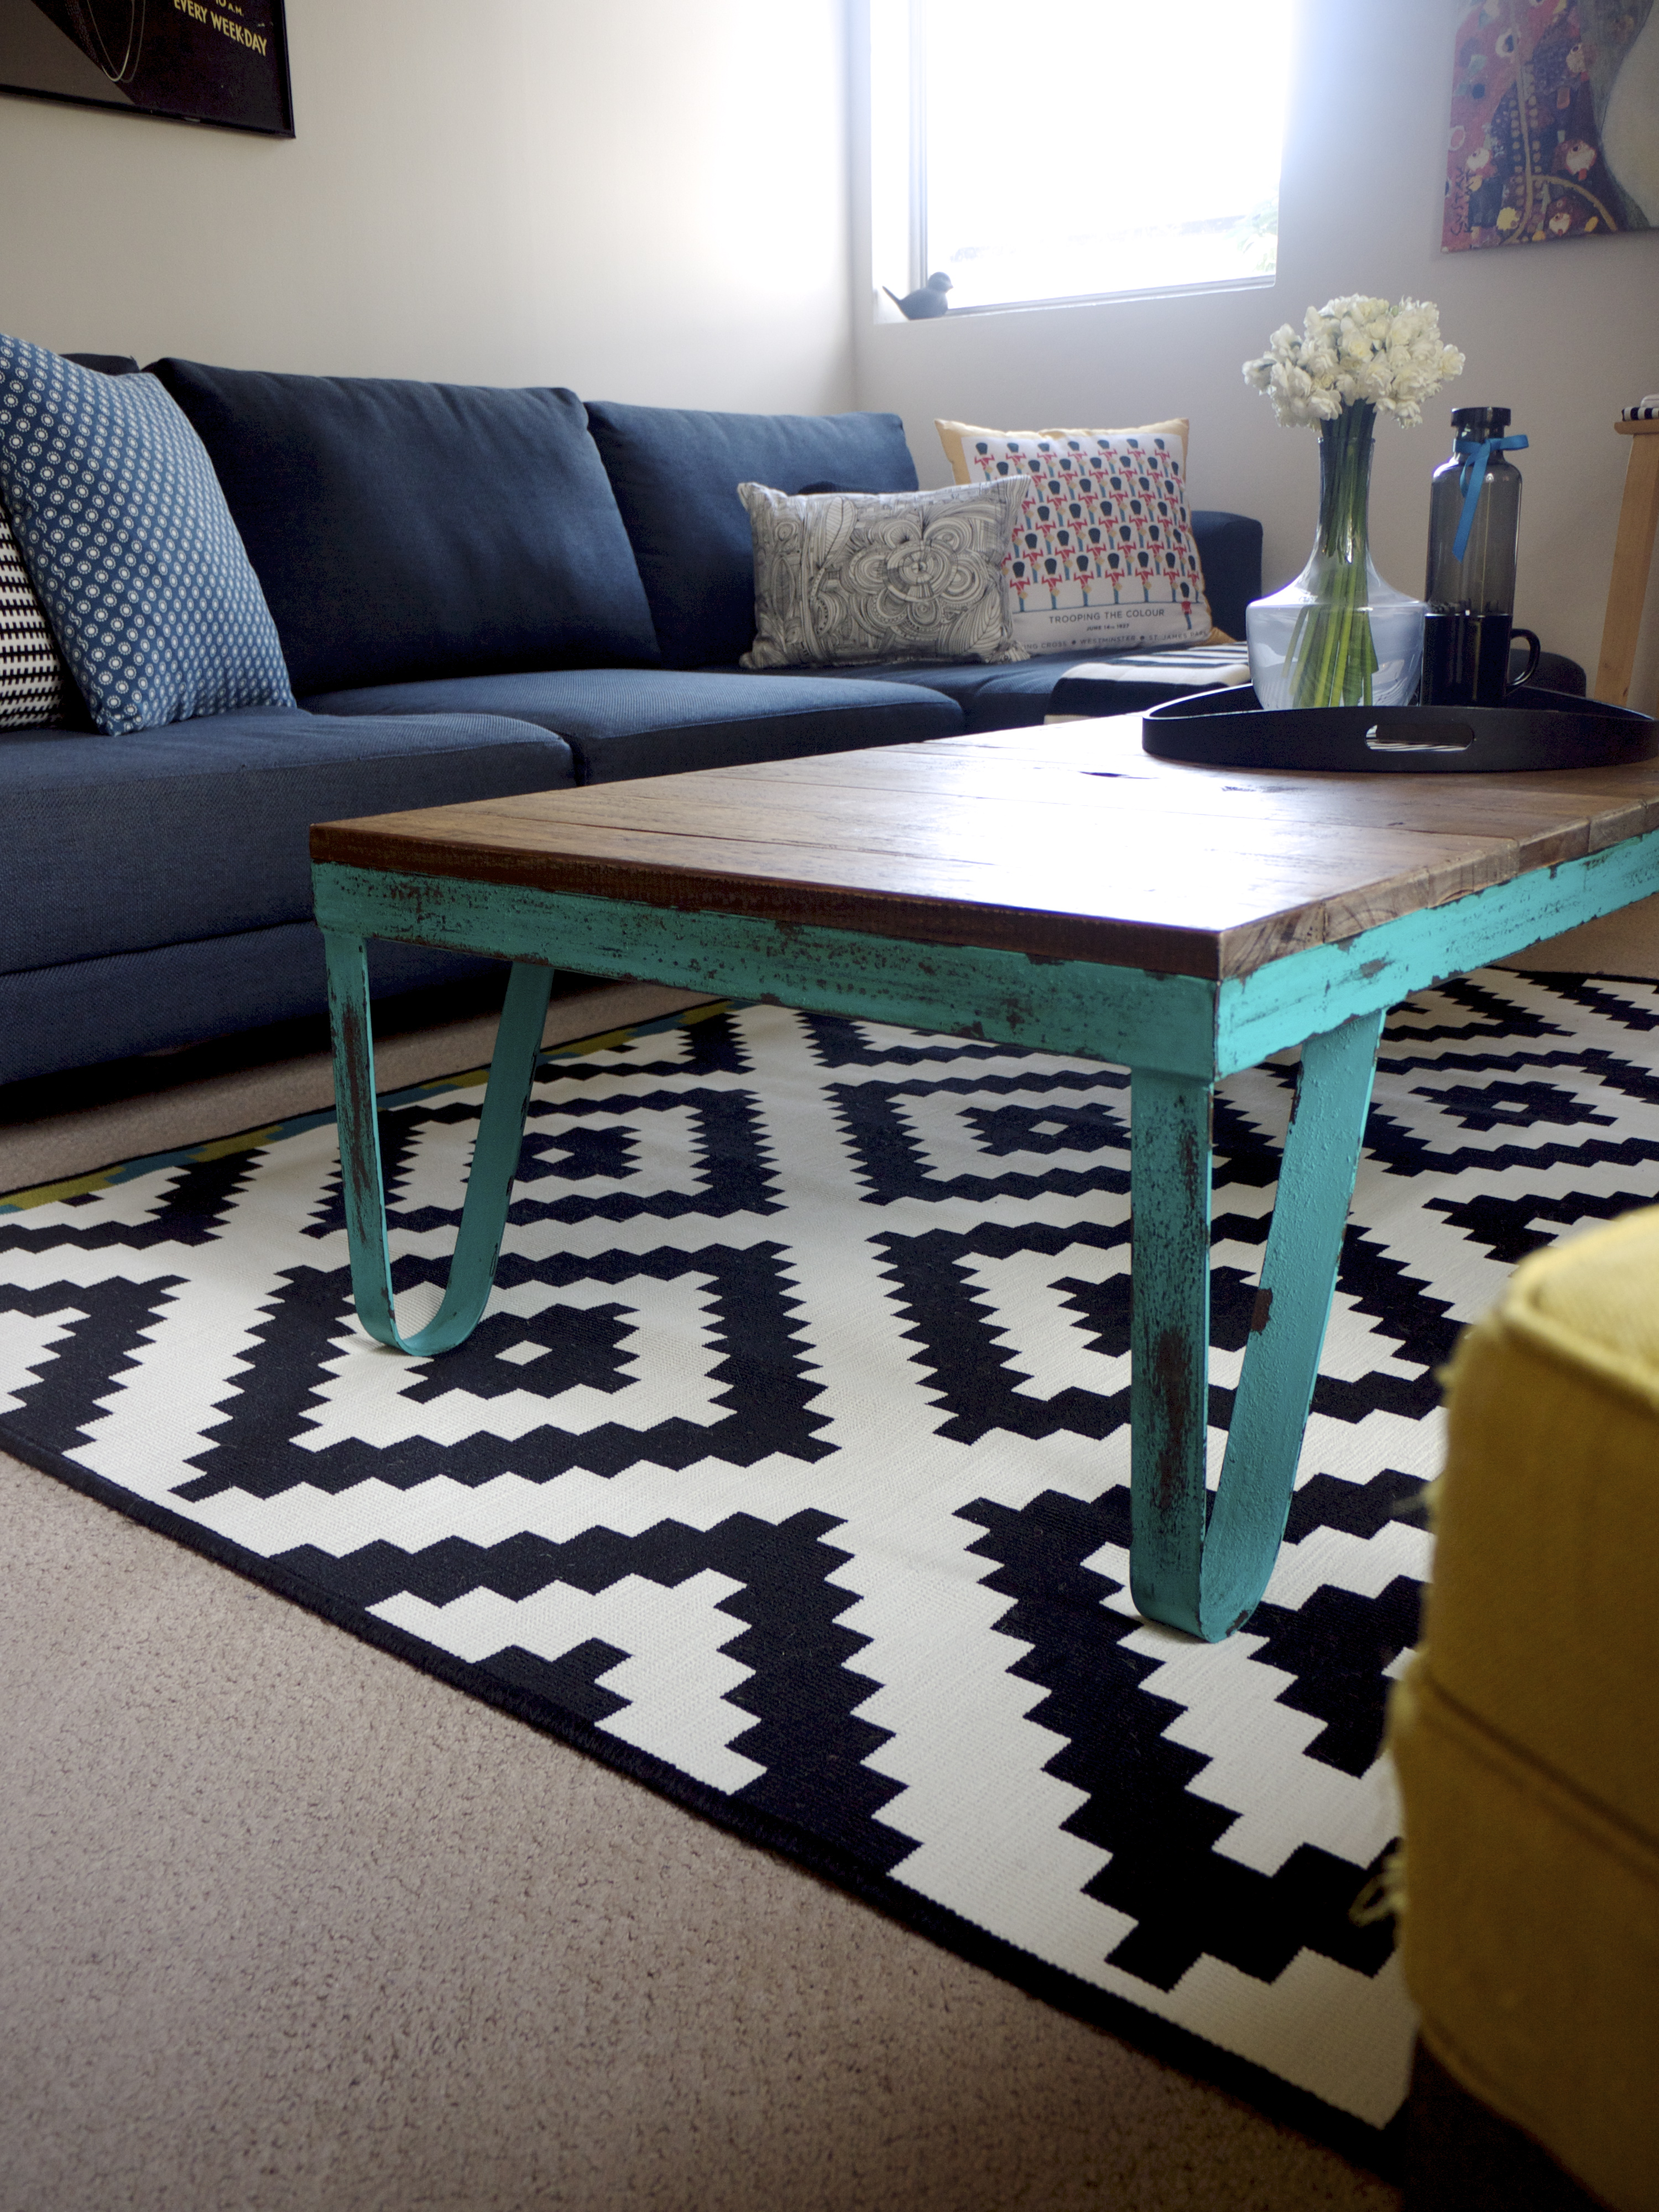 IKEA Winter Living Room Makeover - Industrial Coffee Table and Rug